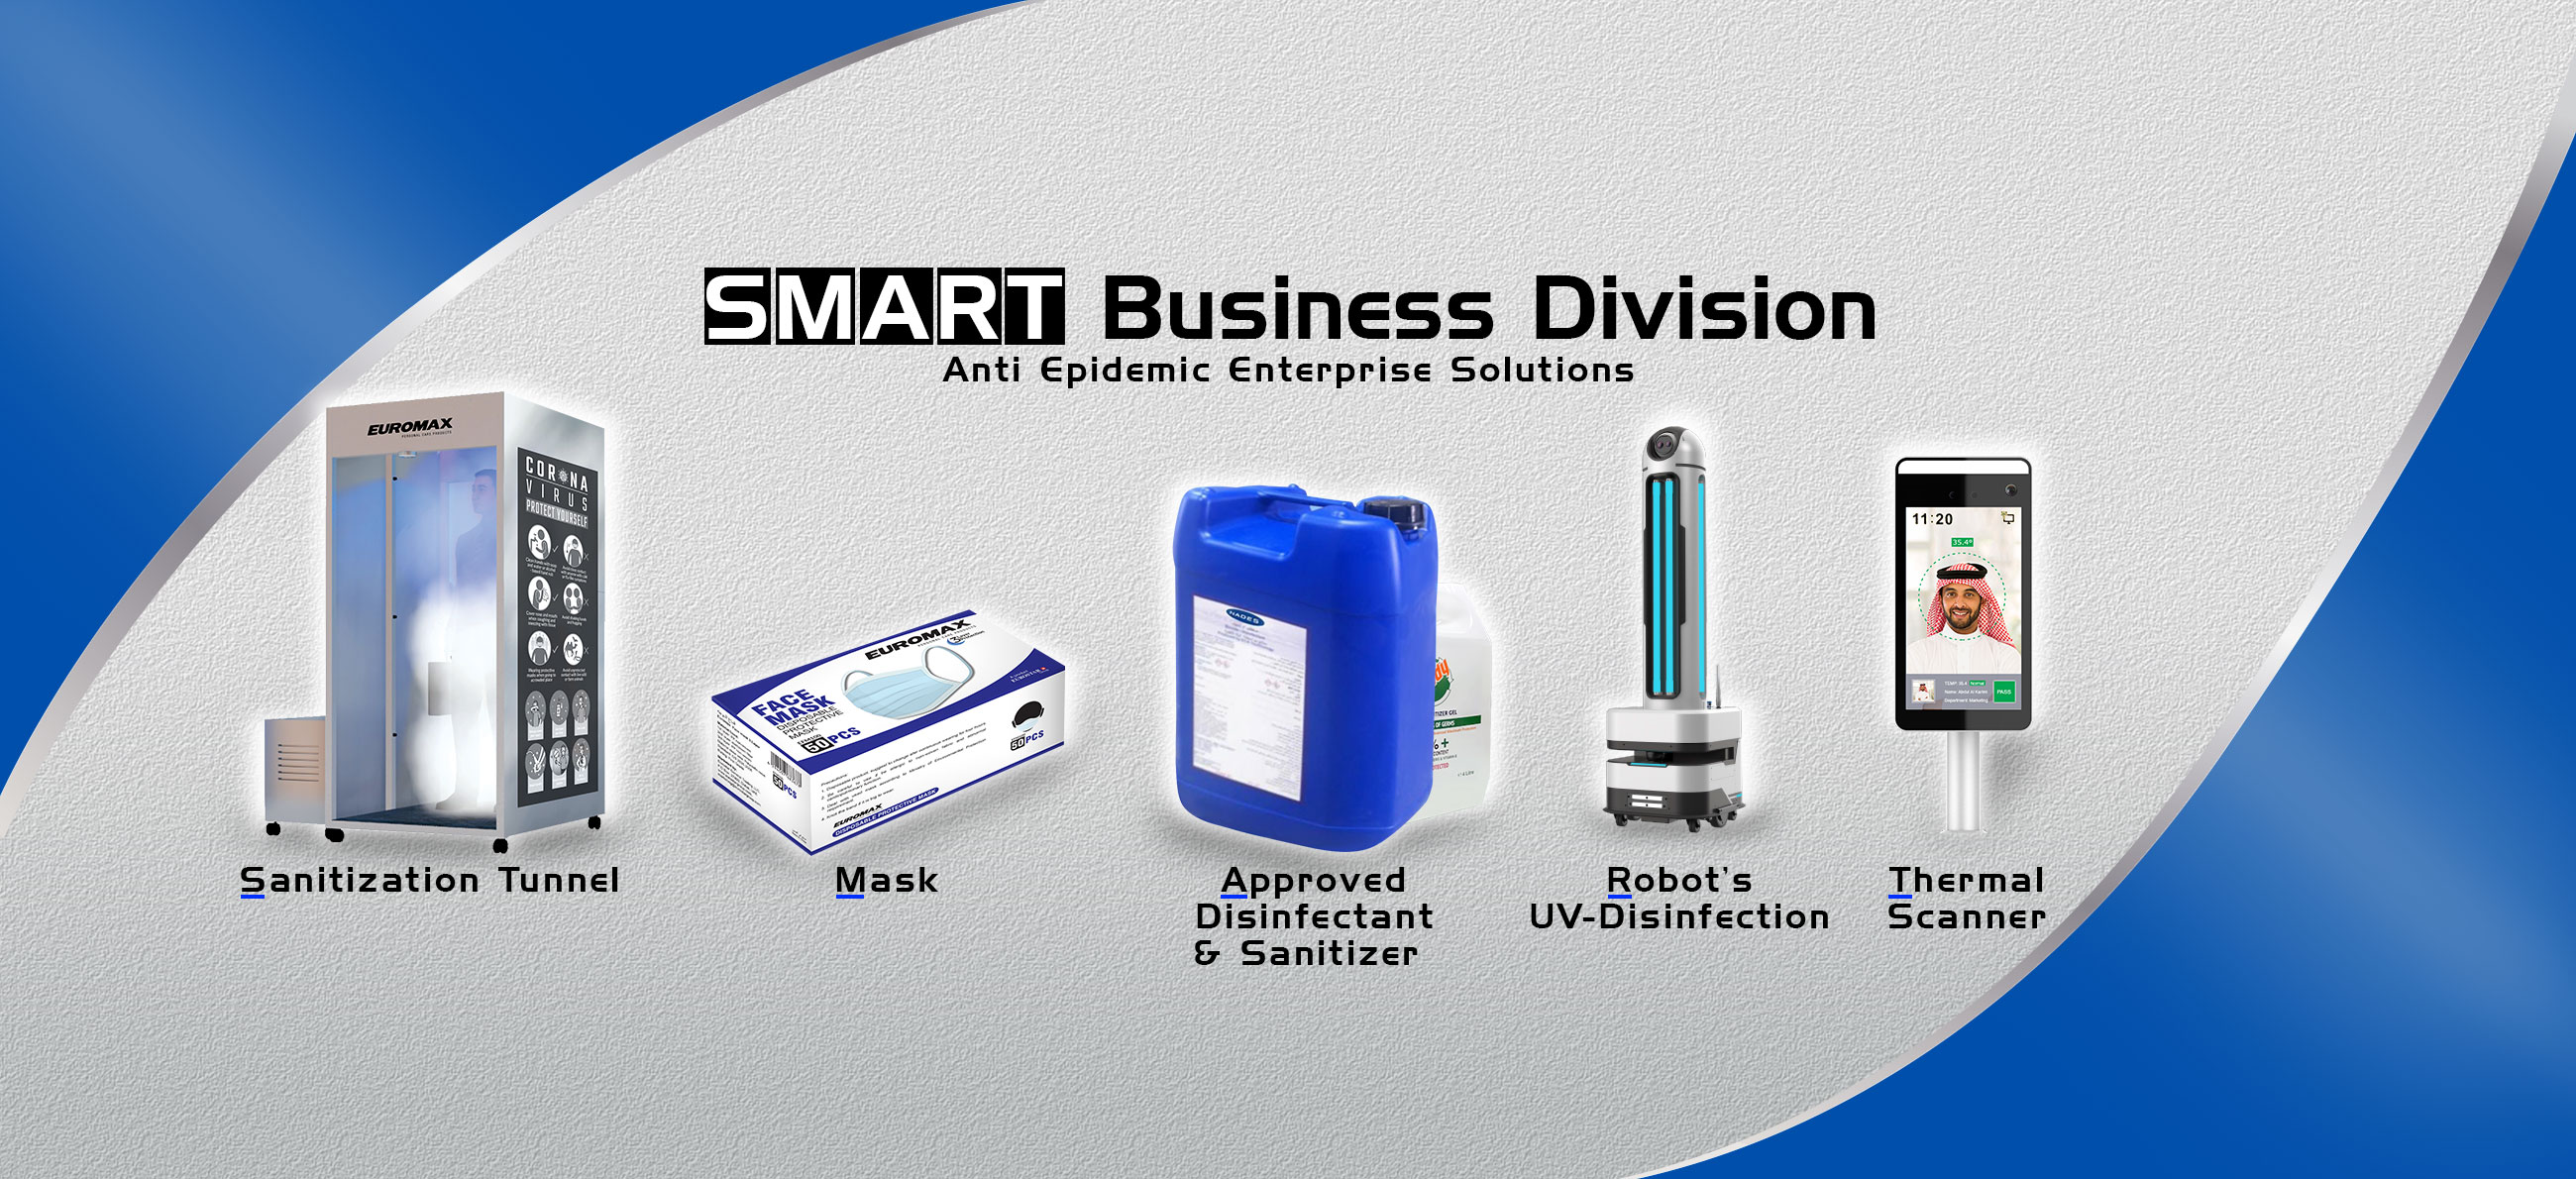 smart_business_divistion_solution_face_mask_sanitization_tunnel_thermal_scanner_reginition_camera